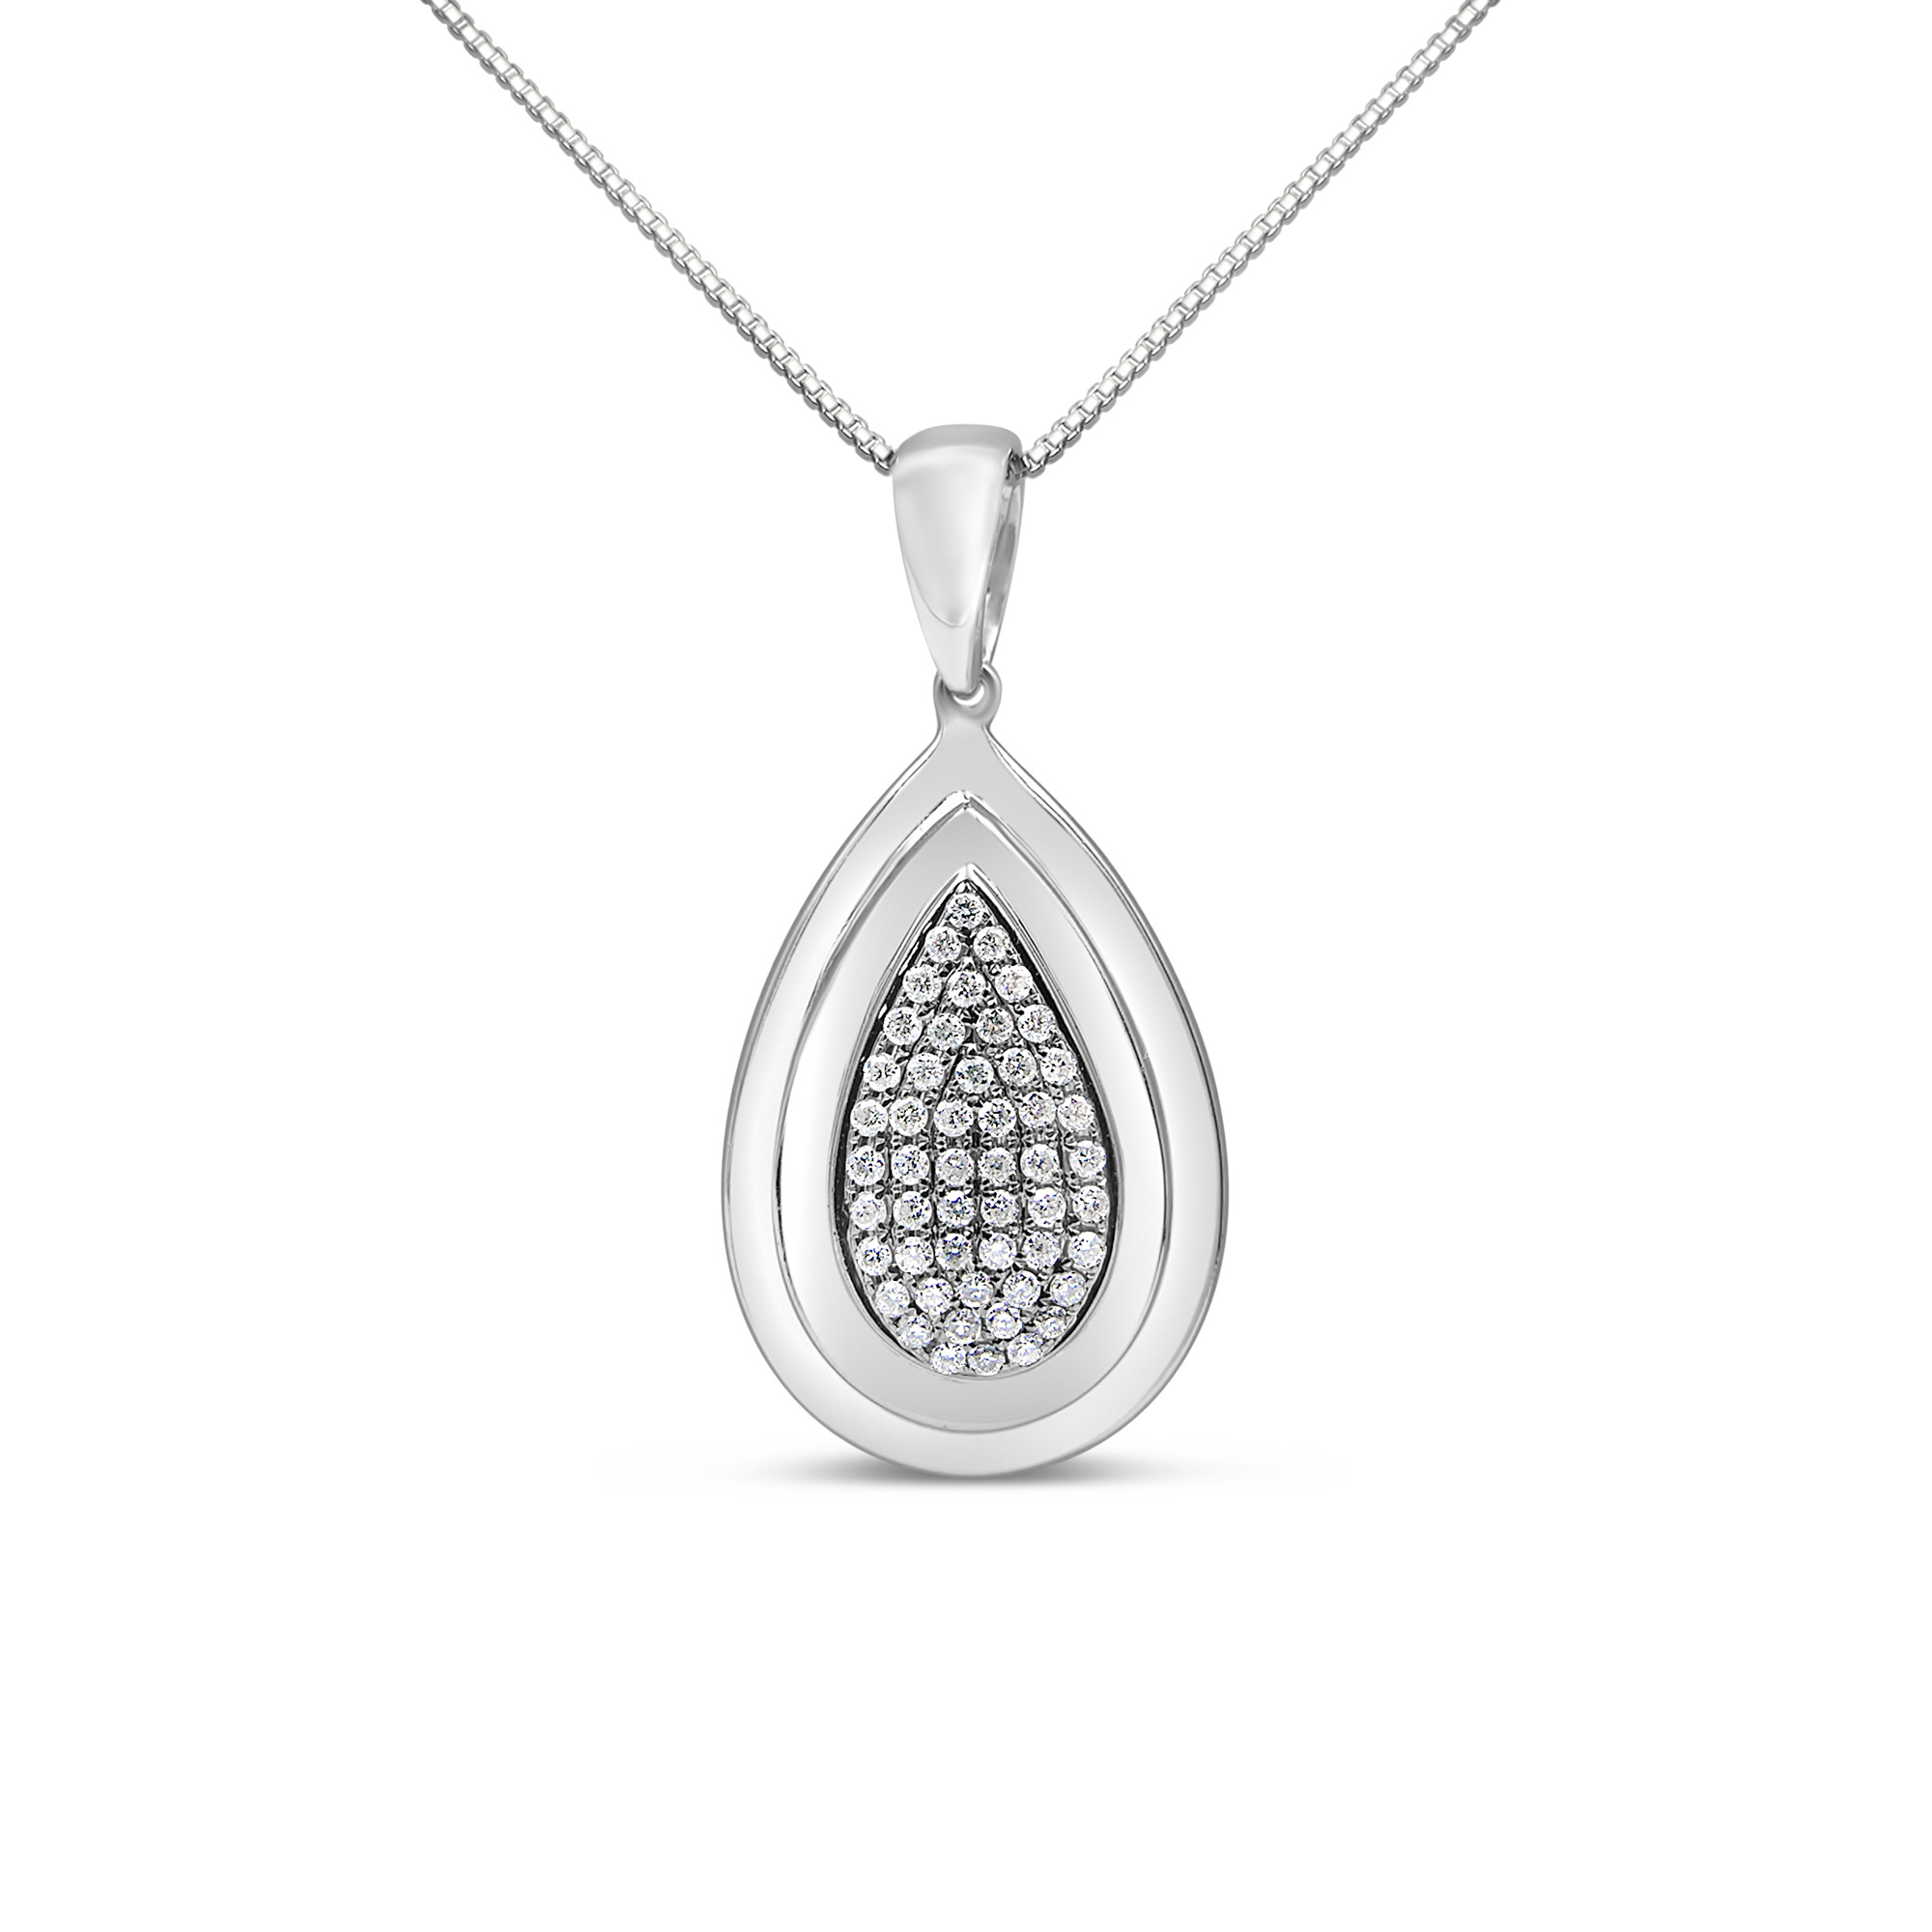 18kt white gold pendant with 0.50 ct diamonds